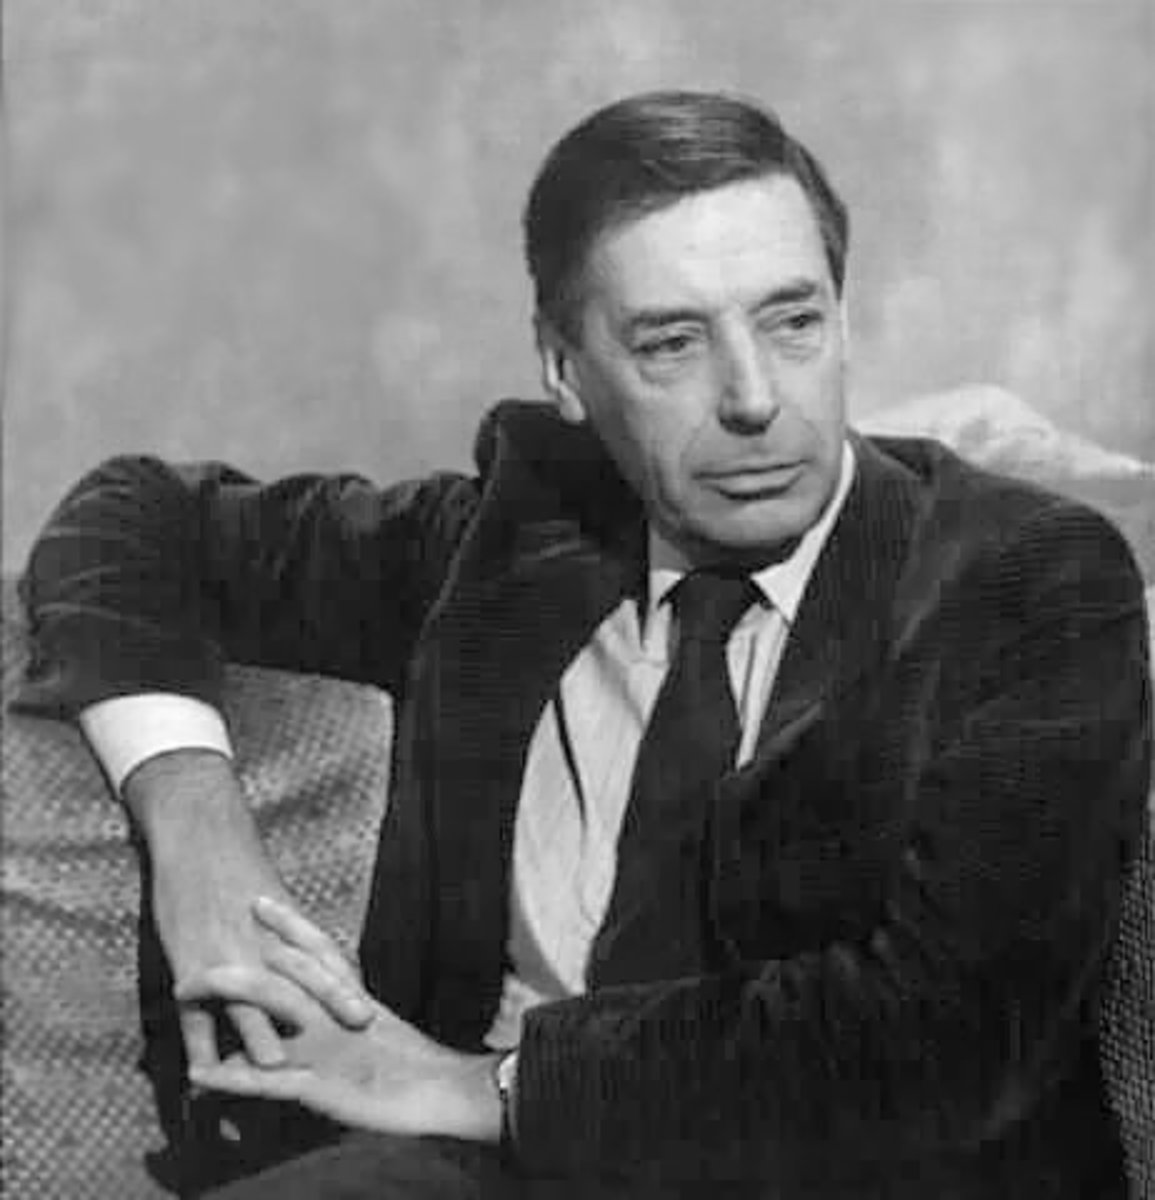 Bernard Williams, Utilitarianism, and Negative Responsibility